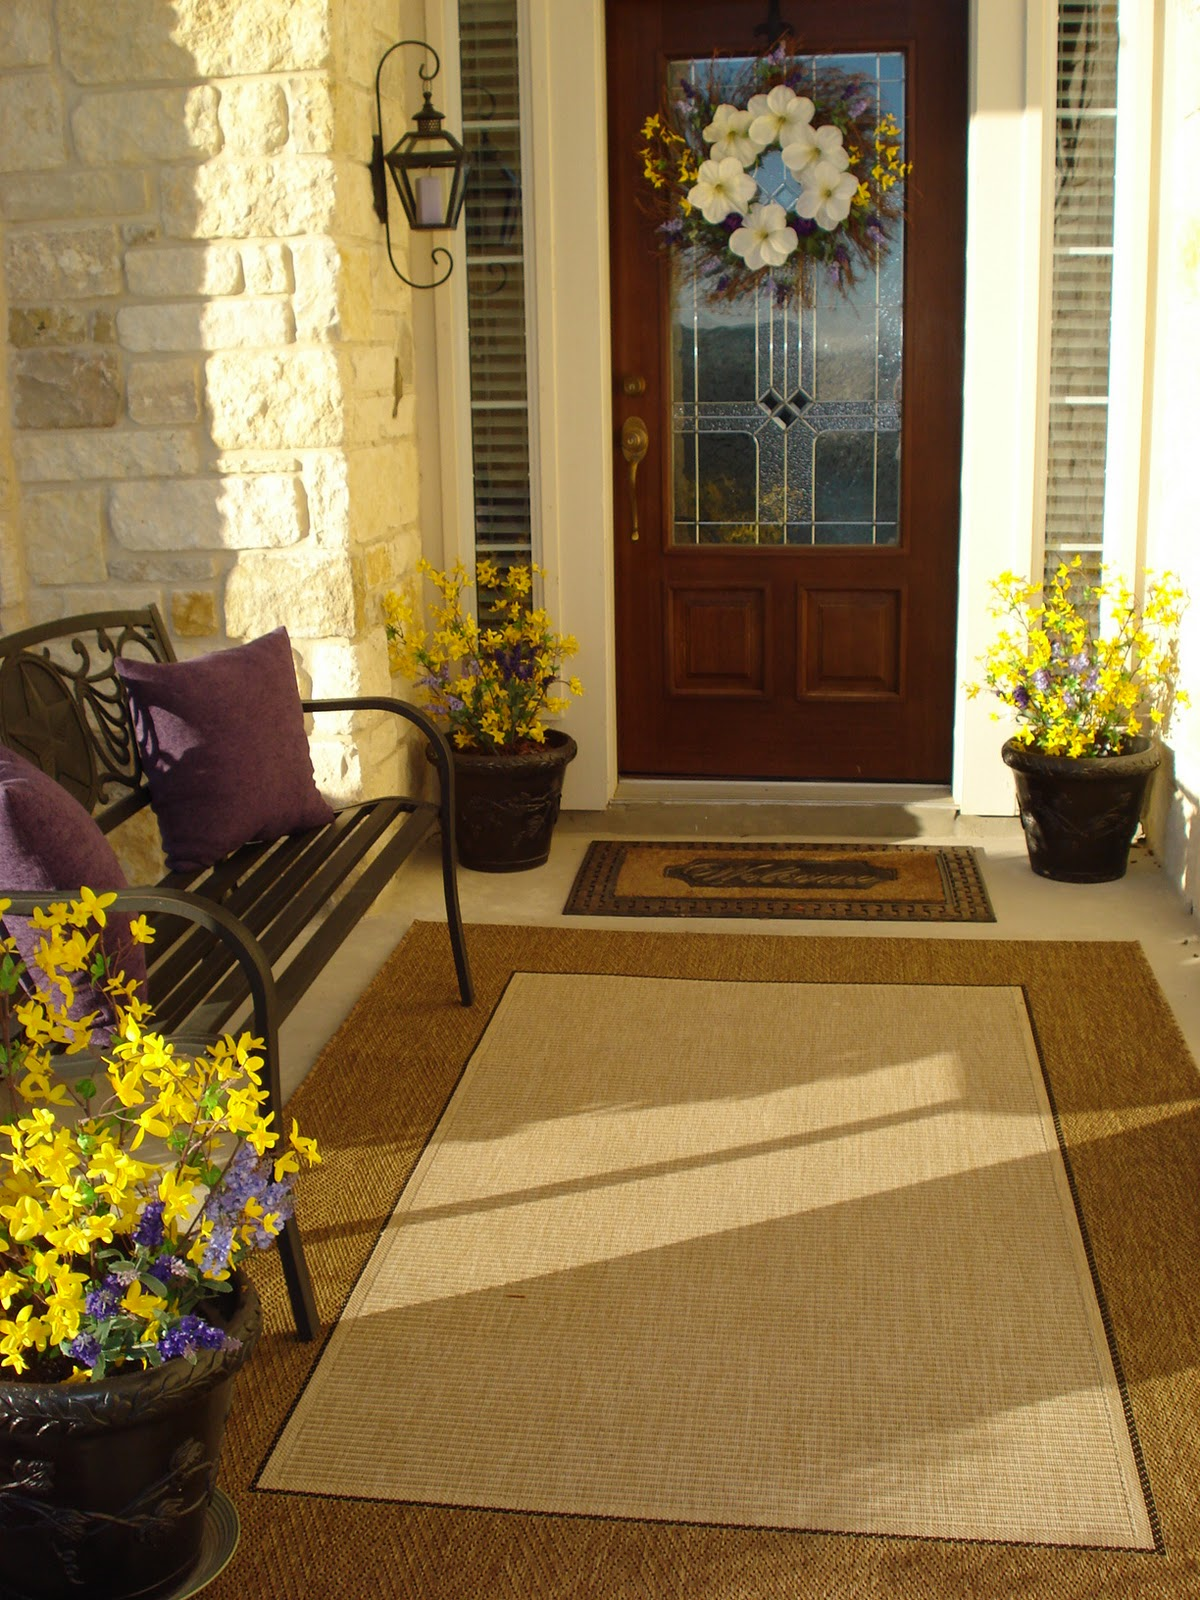 Our Home Away From Home: FRONT PORCH DECOR FOR DIFFERENT ...